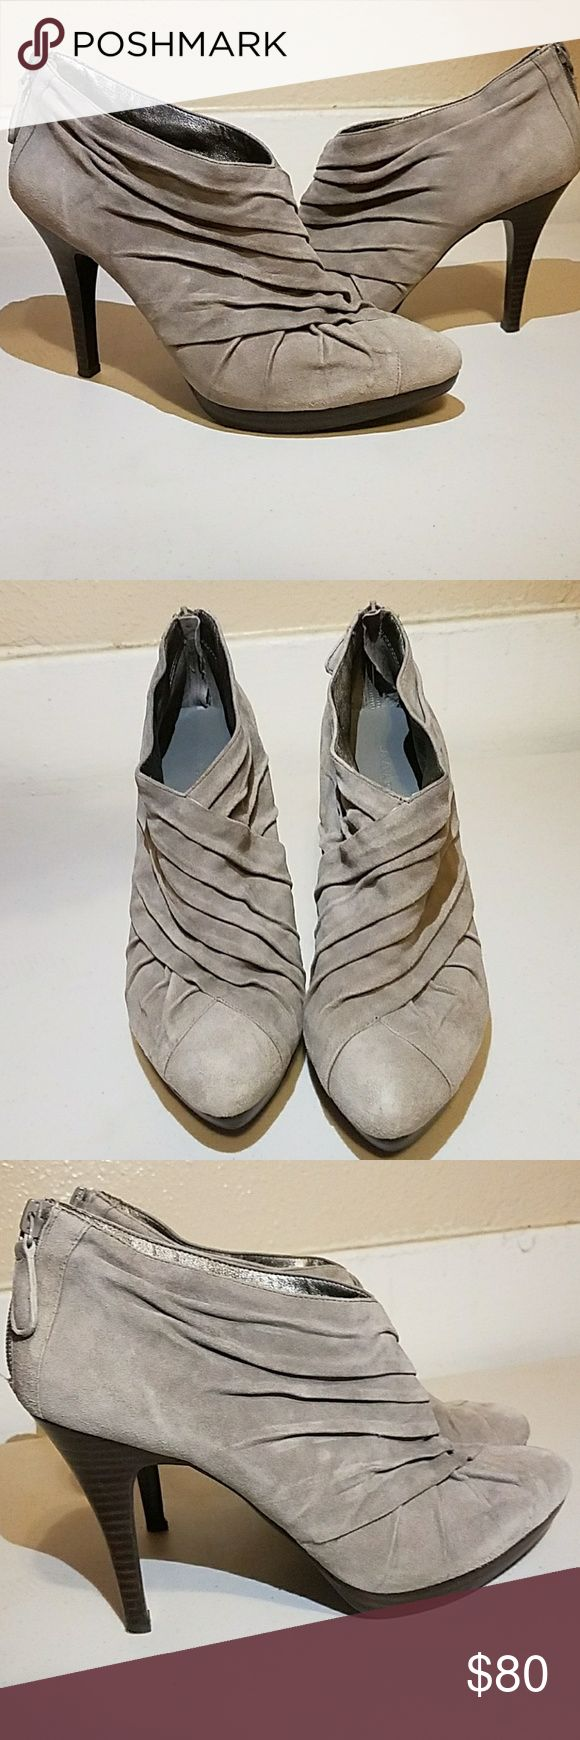 Banana republic brand new ankle suede heel booties Perfect condition!! Only tried on!! Nothing else!! They are SO comfortable!! But do not fit me,  i tried on at home and could not return. Banana Republic Shoes Ankle Boots & Booties